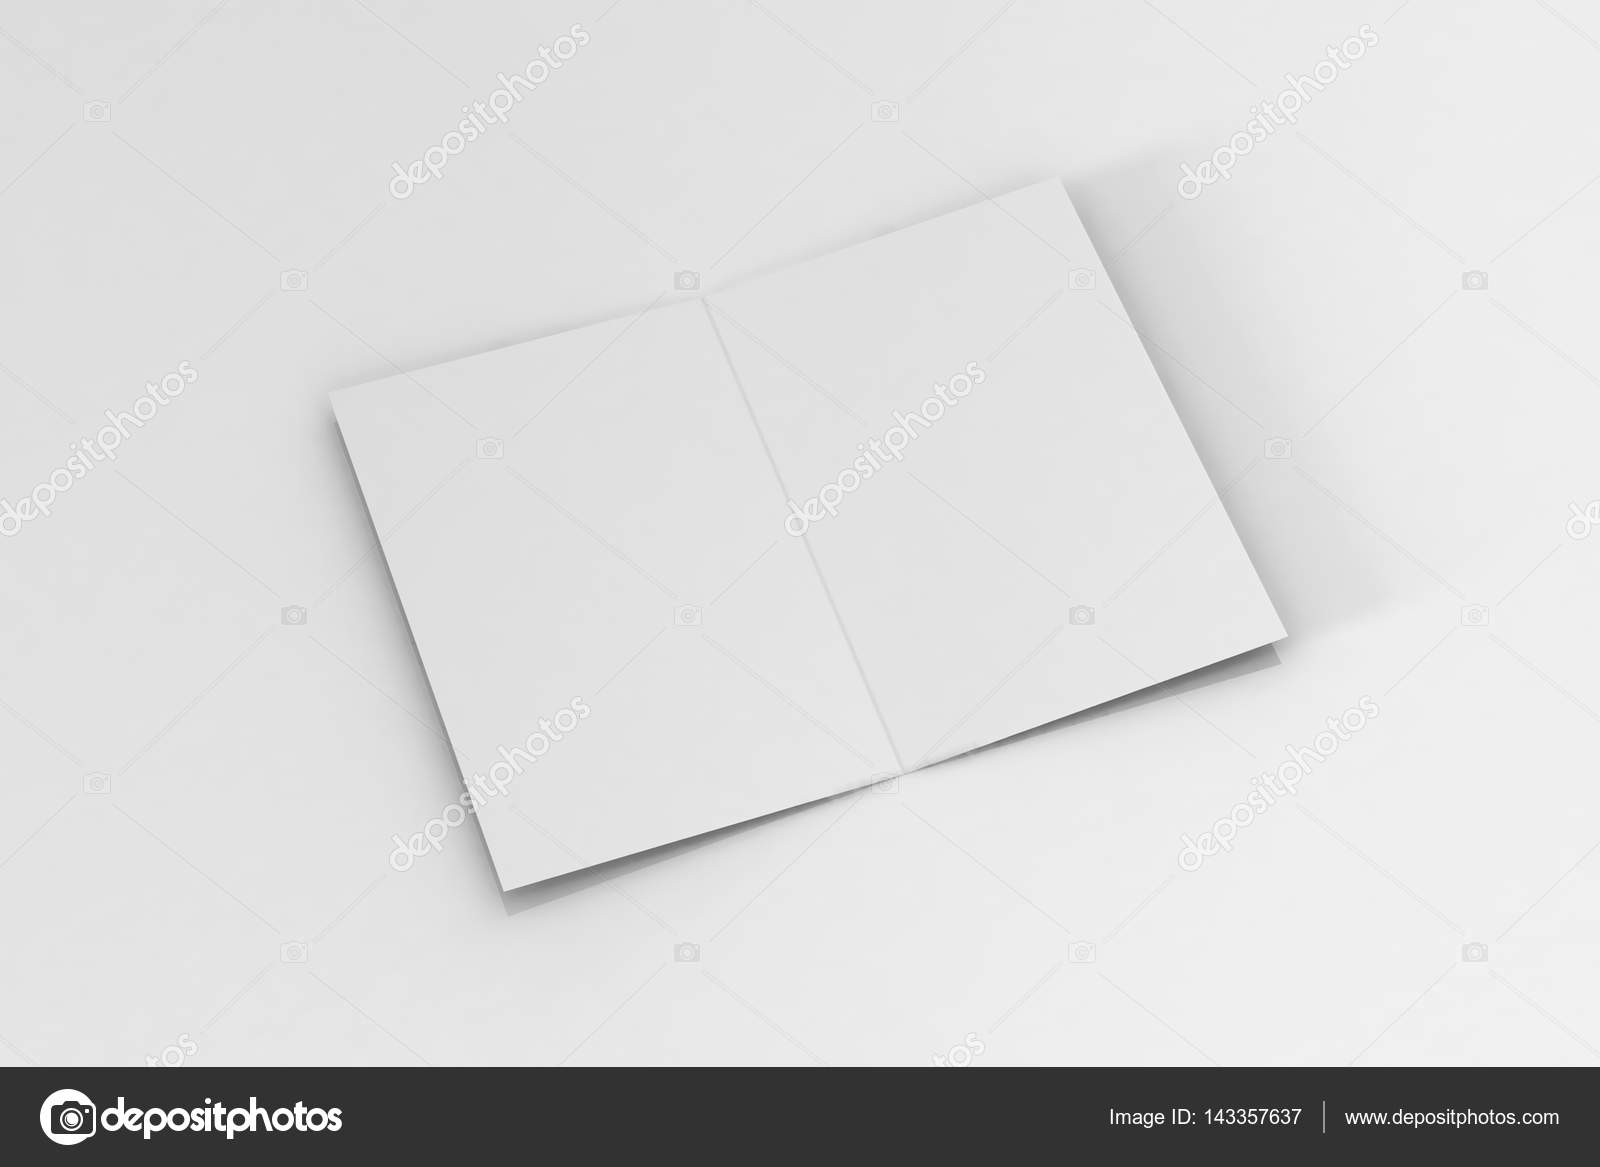 Realistic Rendering Of Bi Fold A5 Brochure Leaflet Mock Up On Isolated White Background Photo By DEVRAWAT21